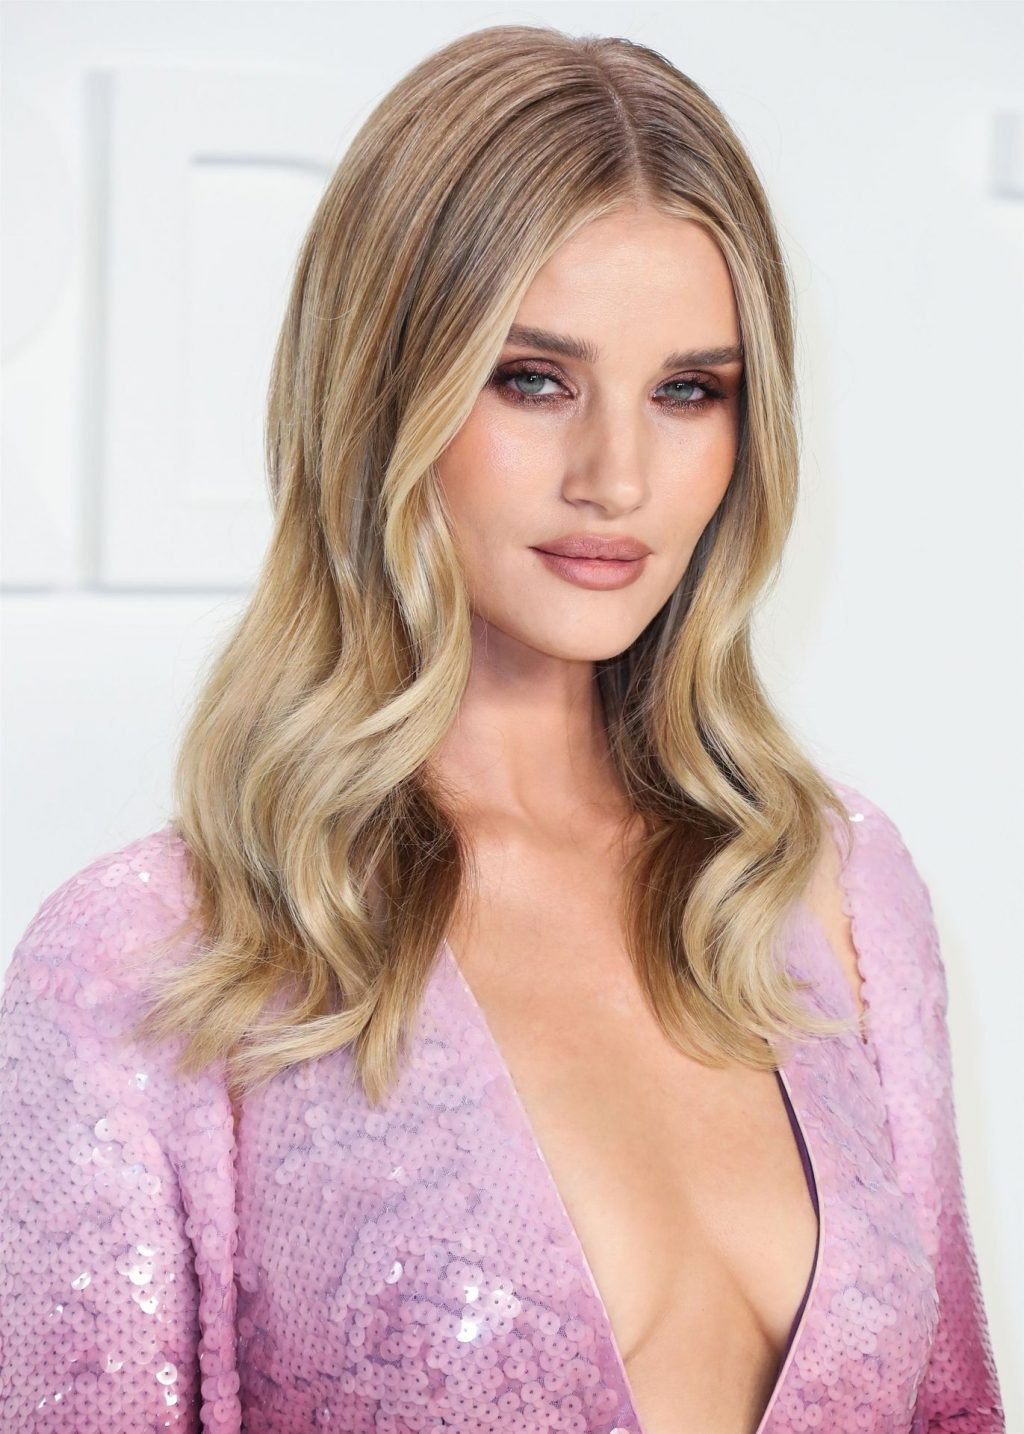 Rosie Huntington Whiteley Sexy The Fappening Blog 45 1024x1434 - Rosie Huntington-Whiteley Shows Her Cleavage at the Tom Ford Fashion Show (115 Photos)